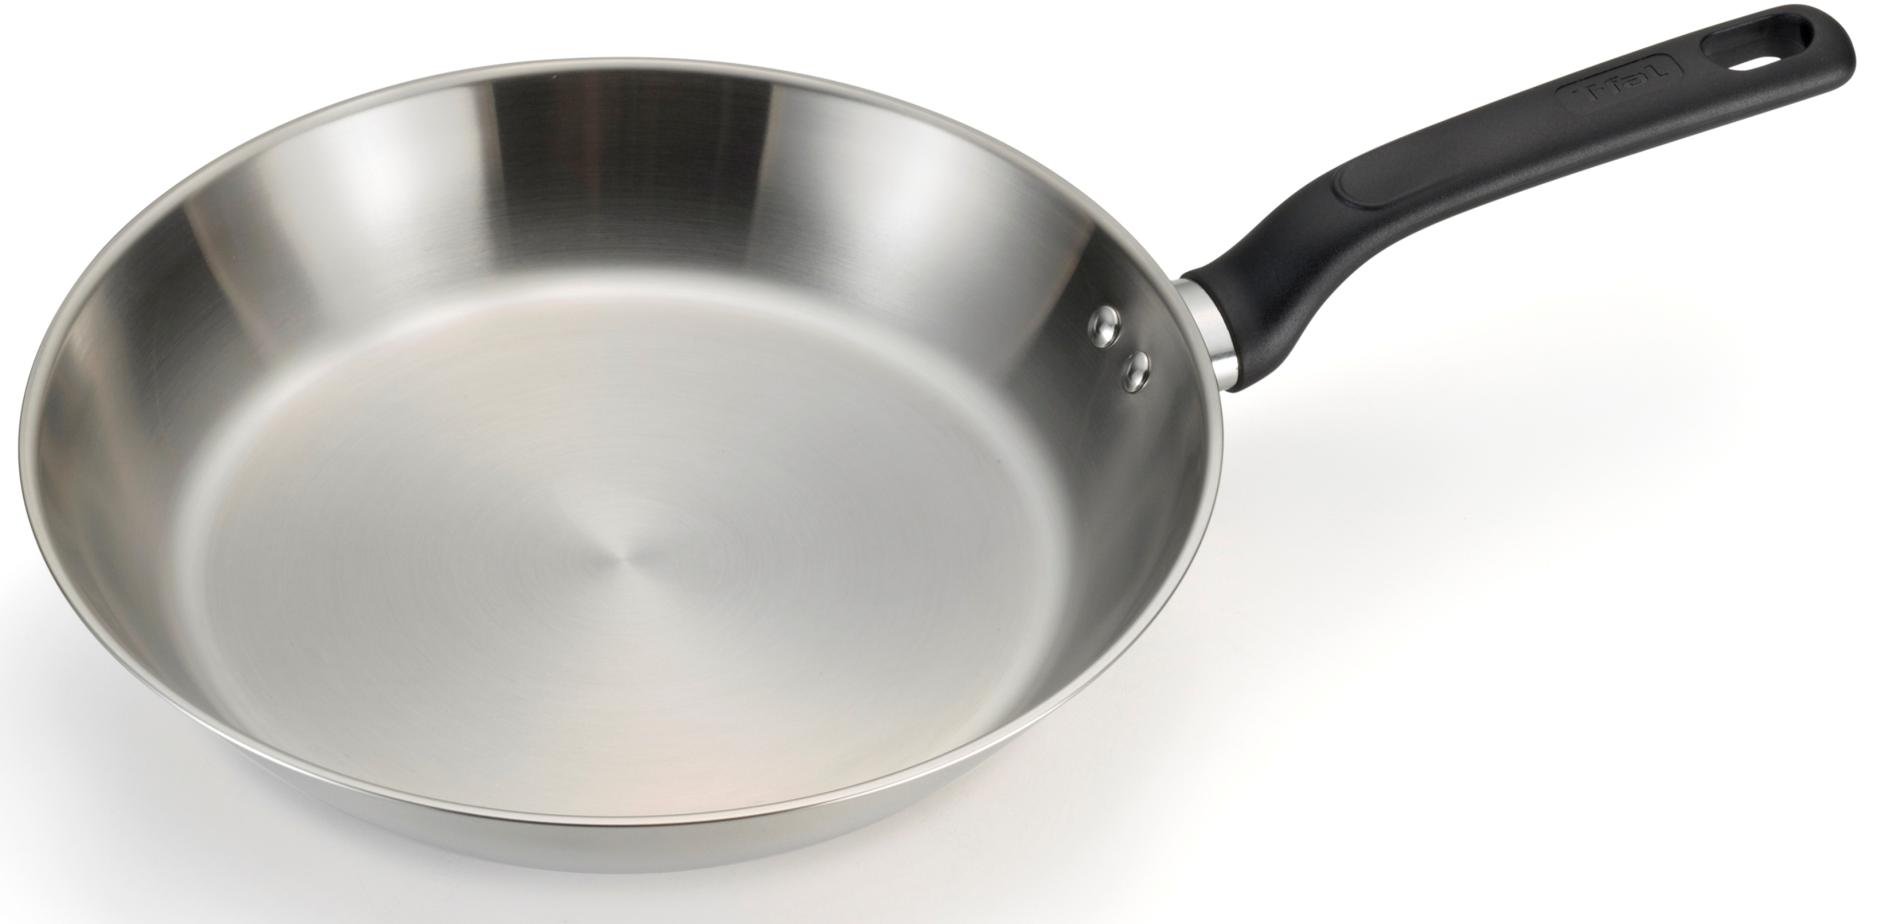 T-fal Excite Stainless Steel 10-Inch Fry Pan